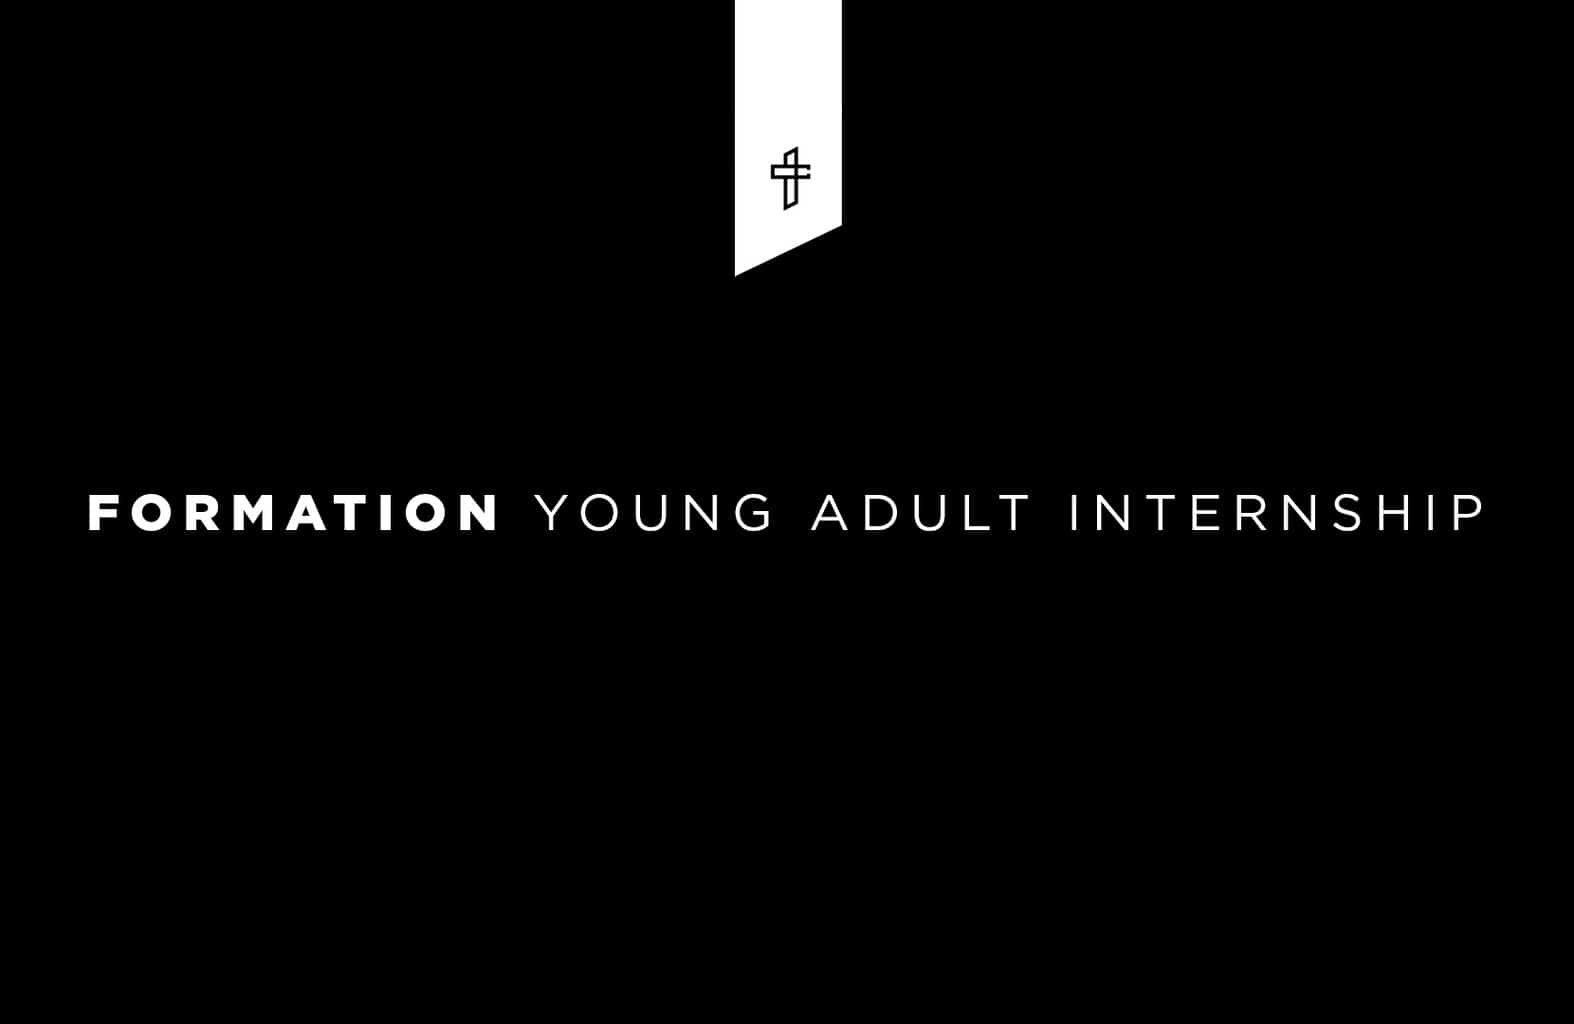 Formation Young Adult Internship